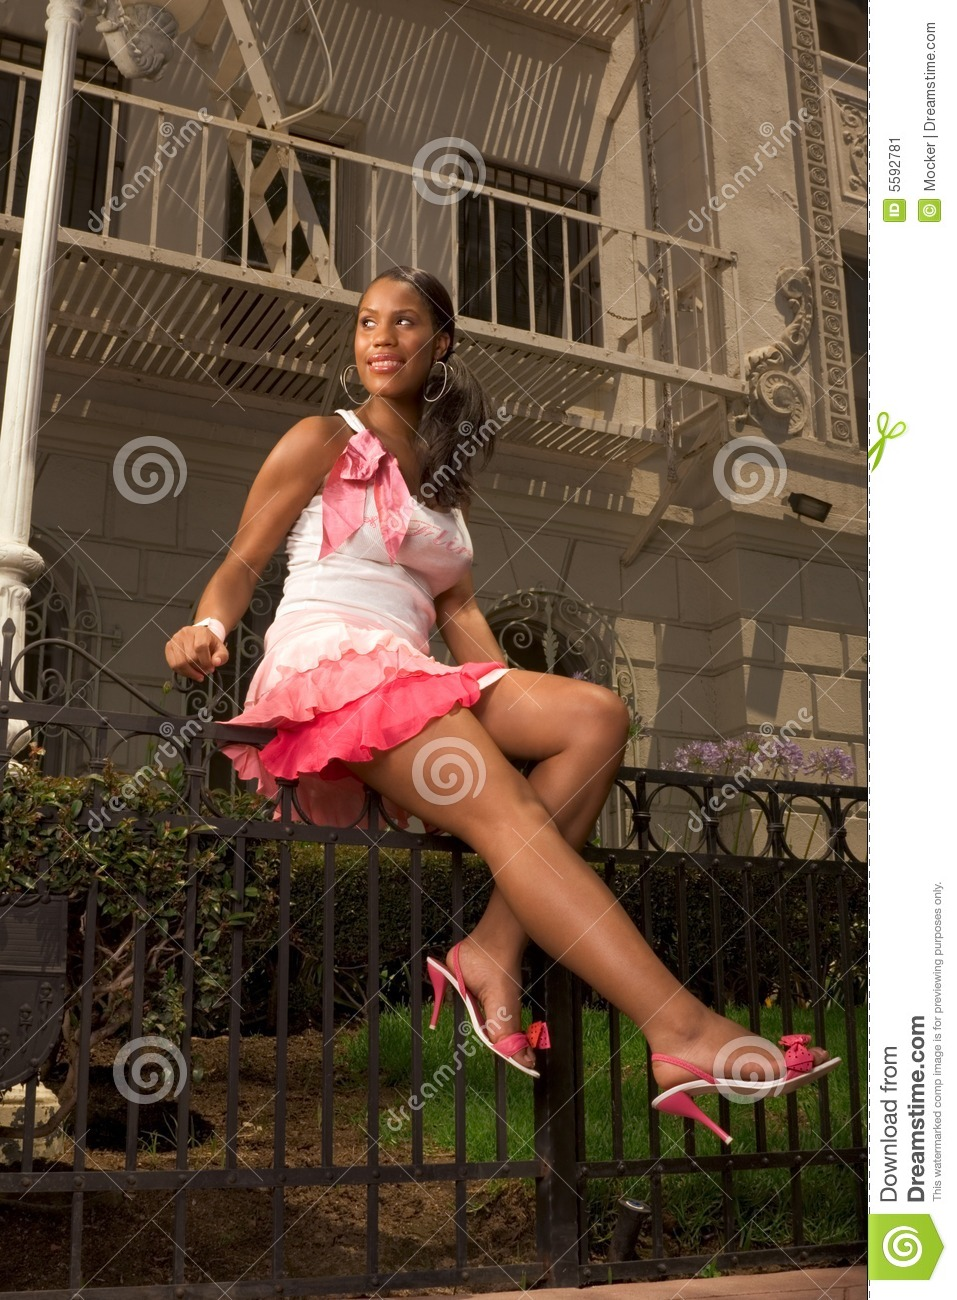 Black fence forged pink sitting skirt woman